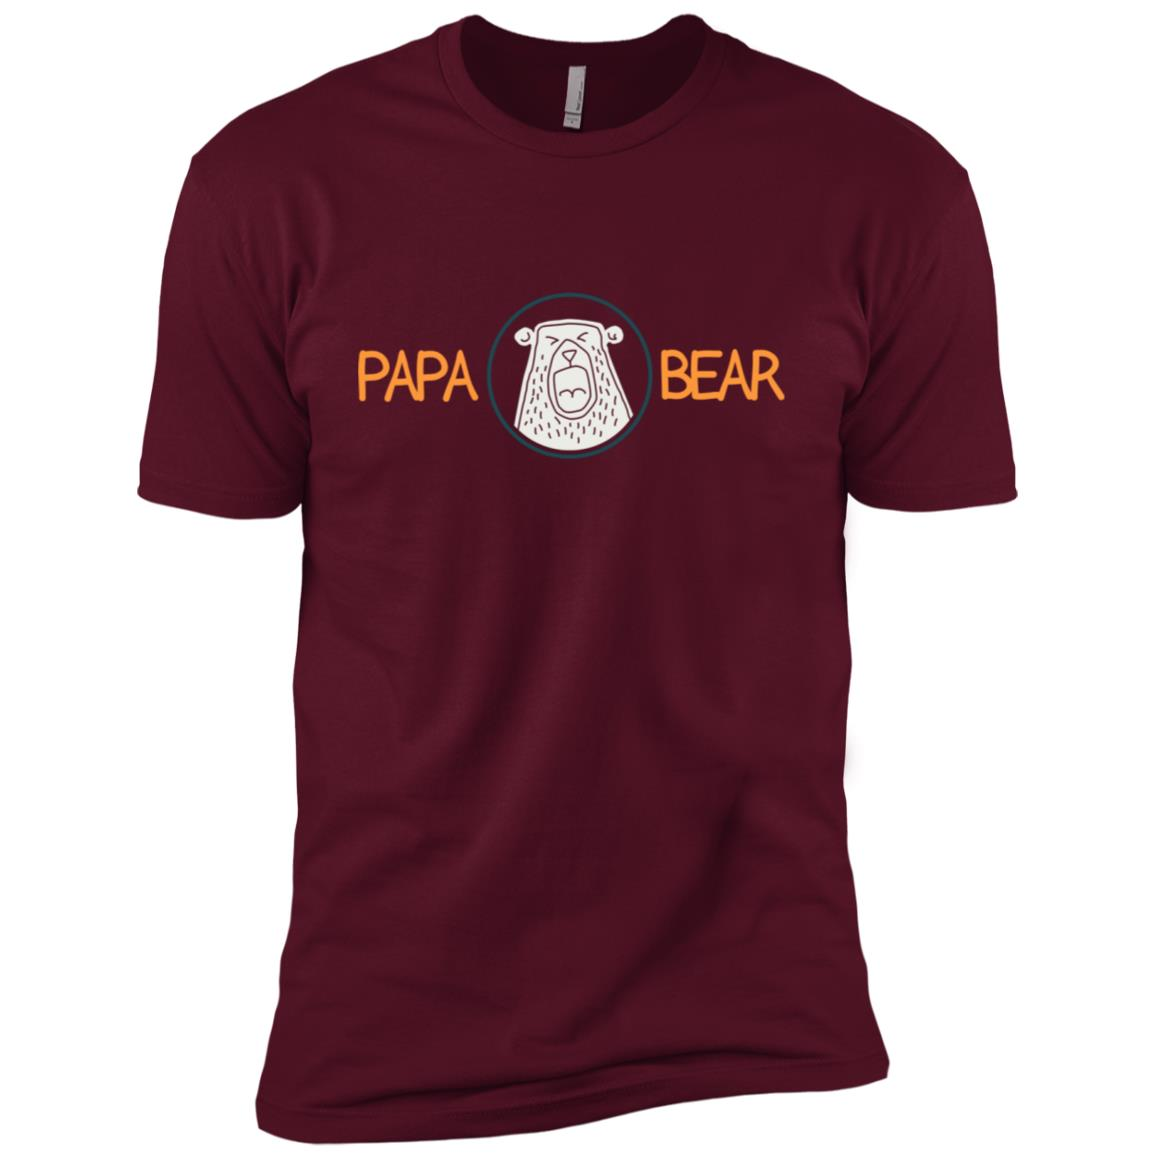 Papa Bear Great Gift For Dad, Father, Grandpa Men Short Sleeve T-Shirt